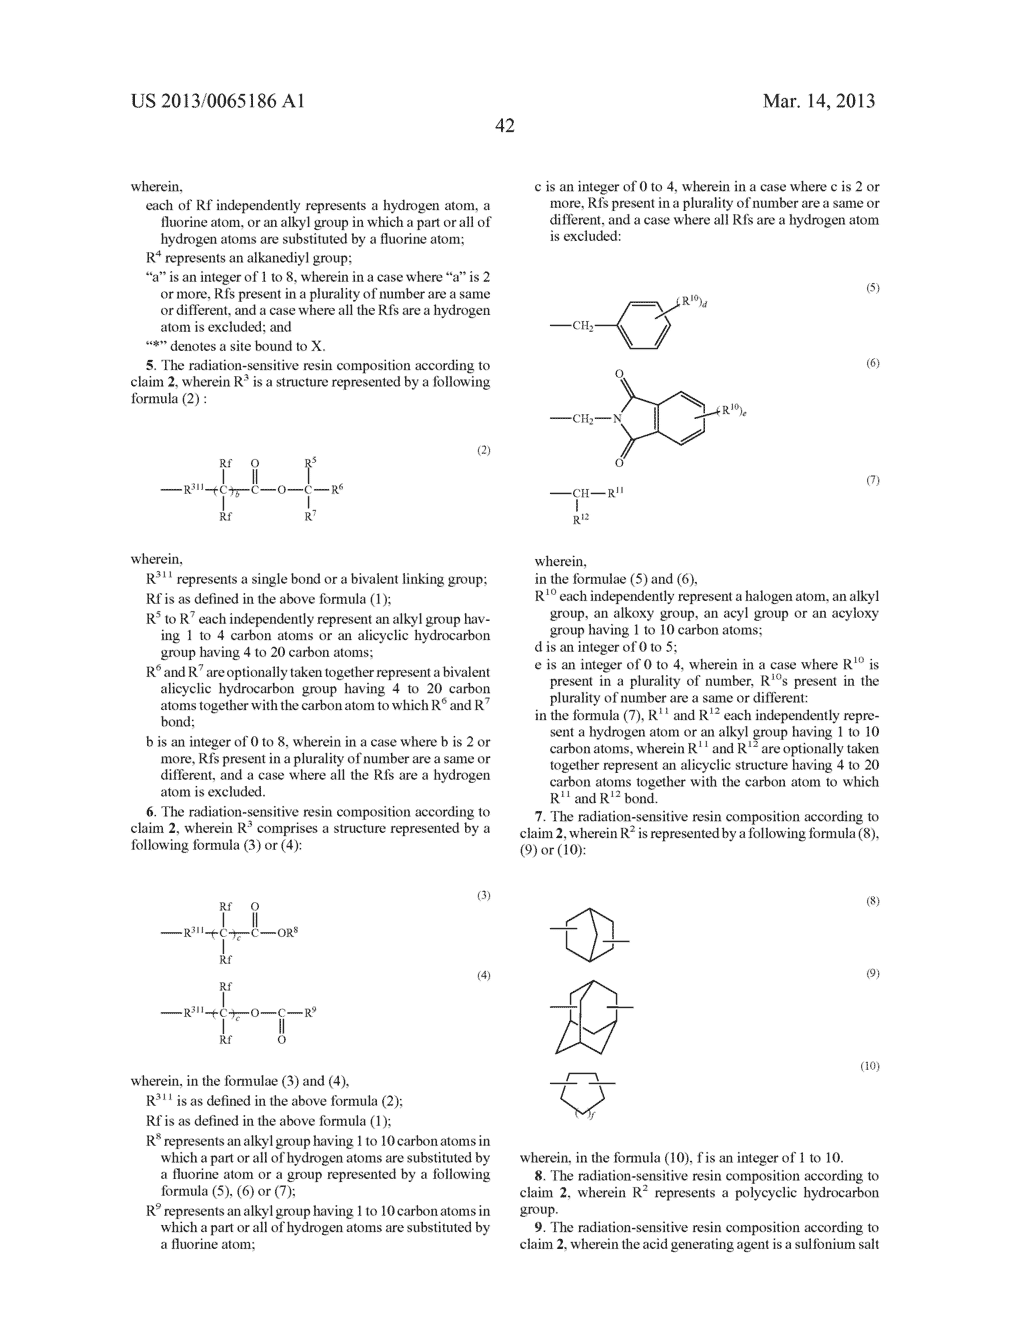 RADIATION-SENSITIVE RESIN COMPOSITION, METHOD FOR FORMING RESIST PATTERN,     ORGANIC ACID AND ACID GENERATING AGENT - diagram, schematic, and image 43